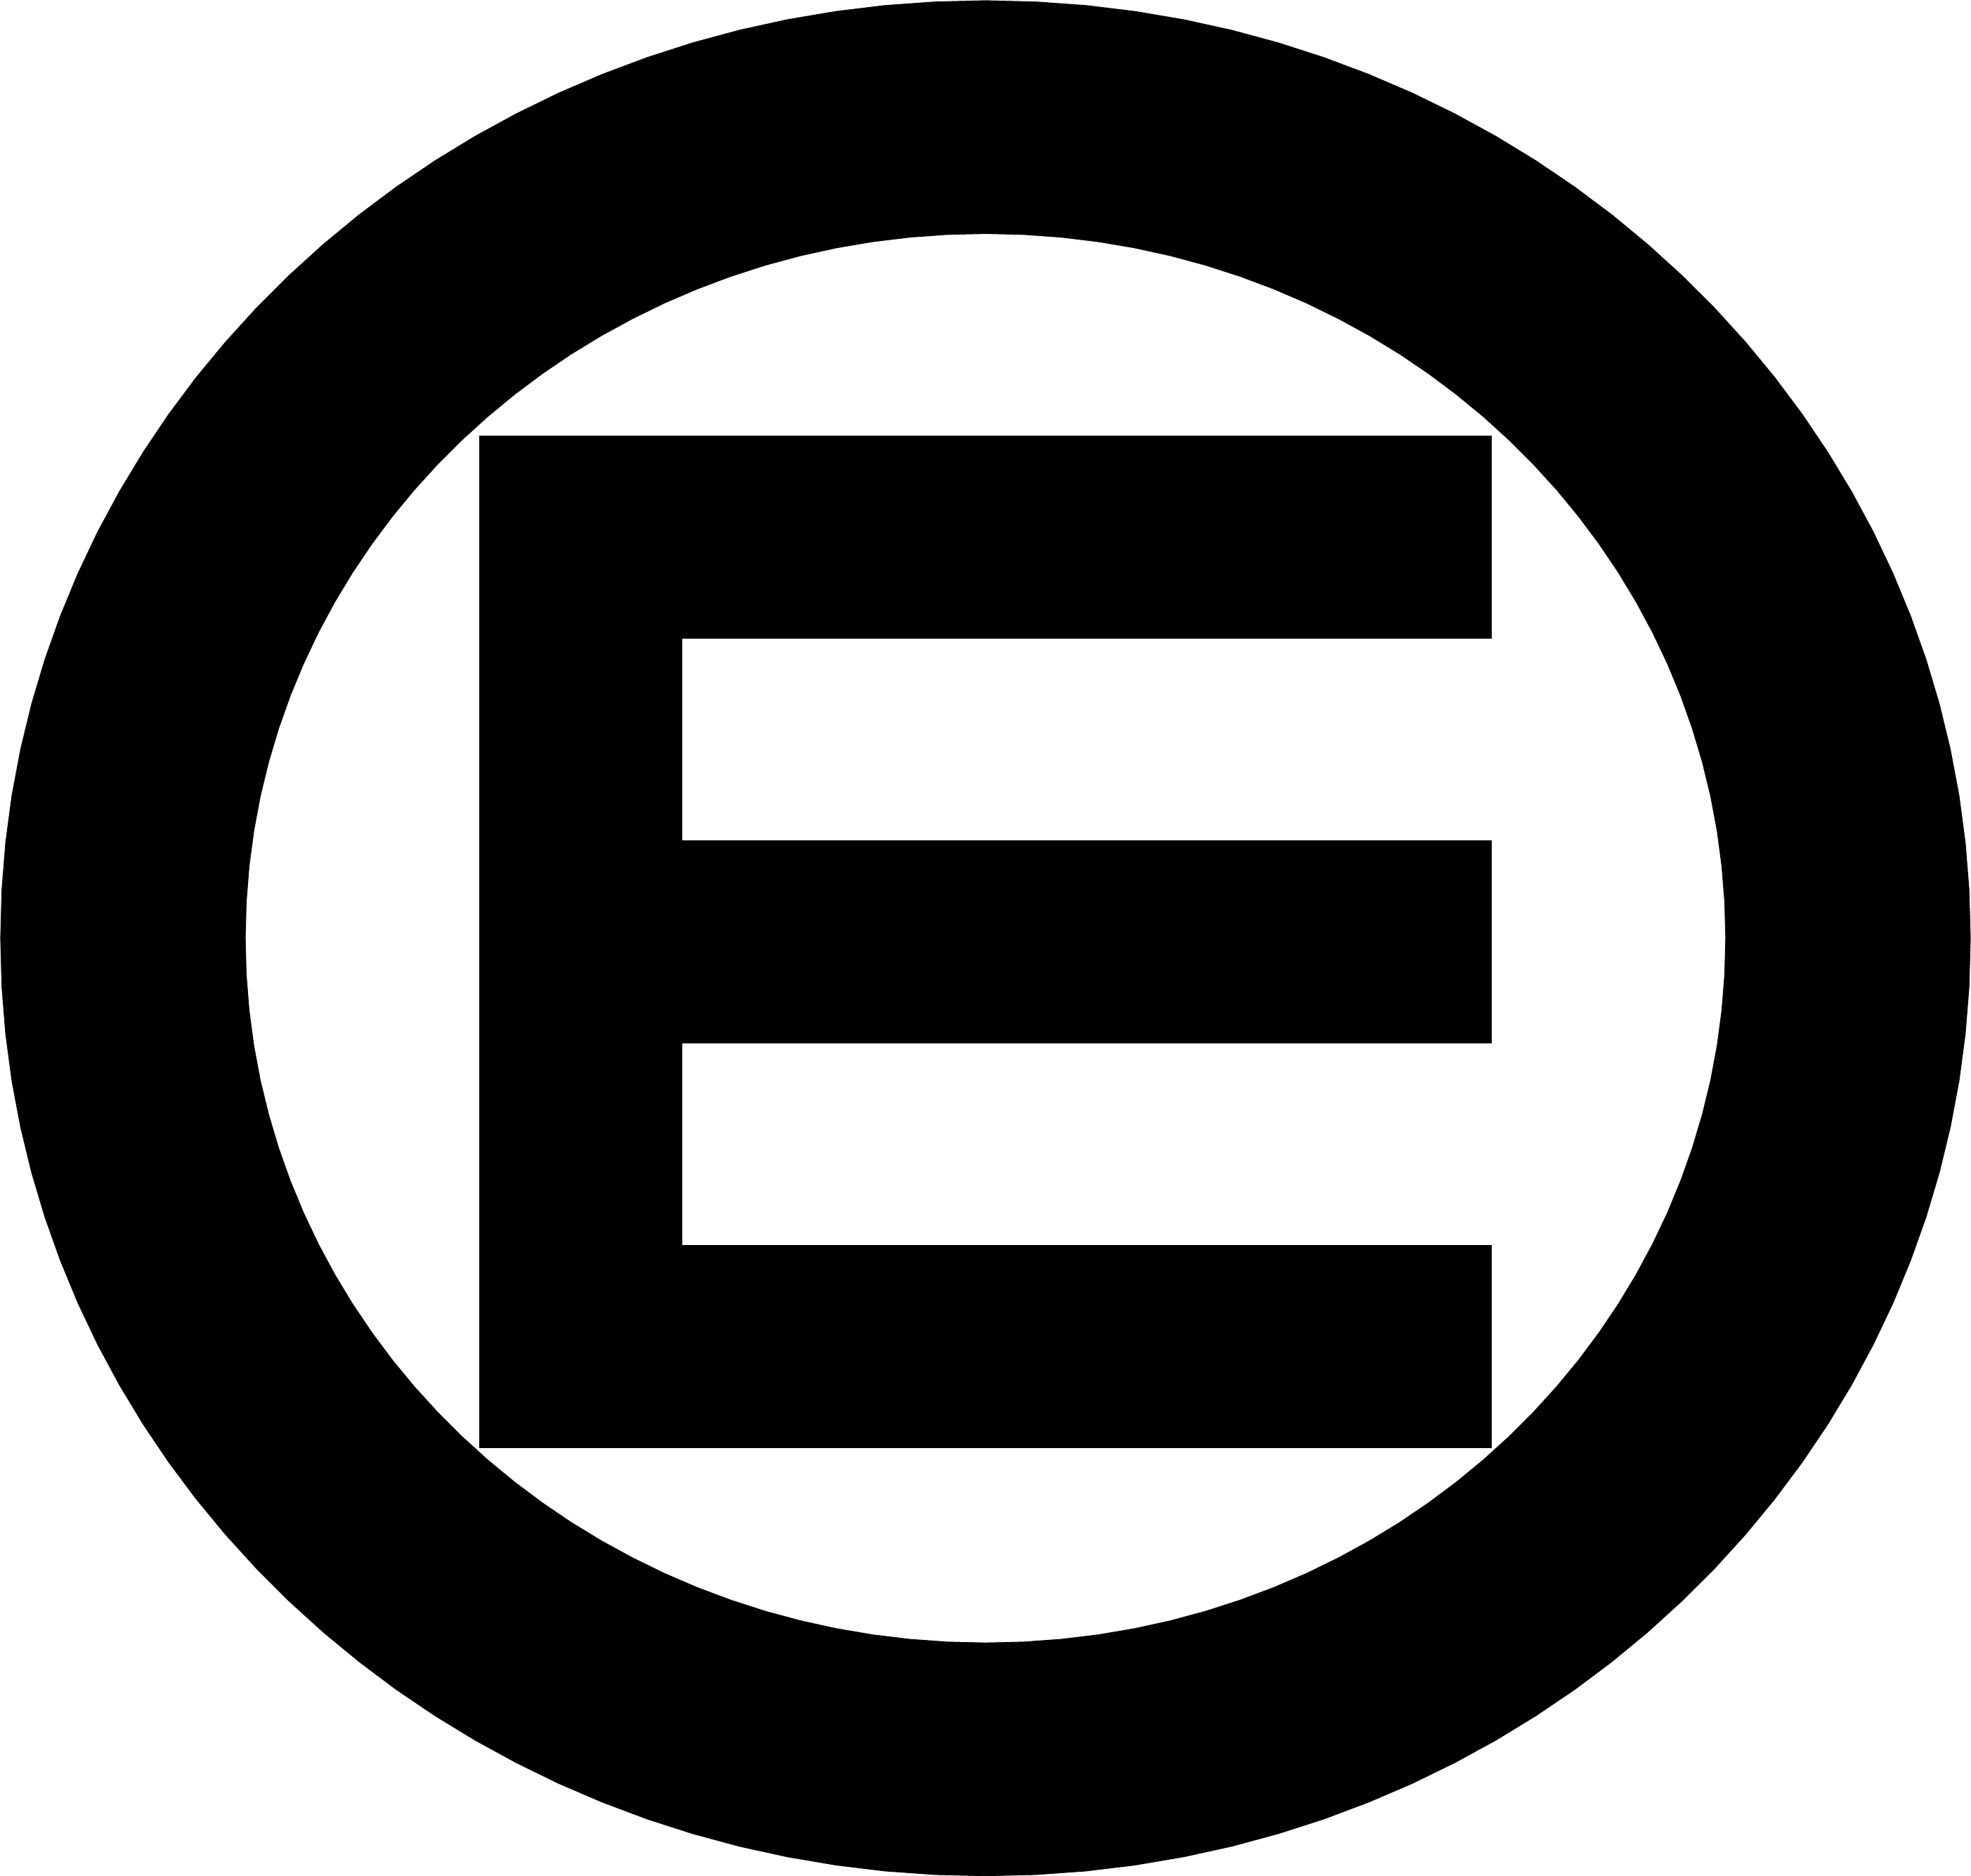 A & e logo png. File egalitarian and equality